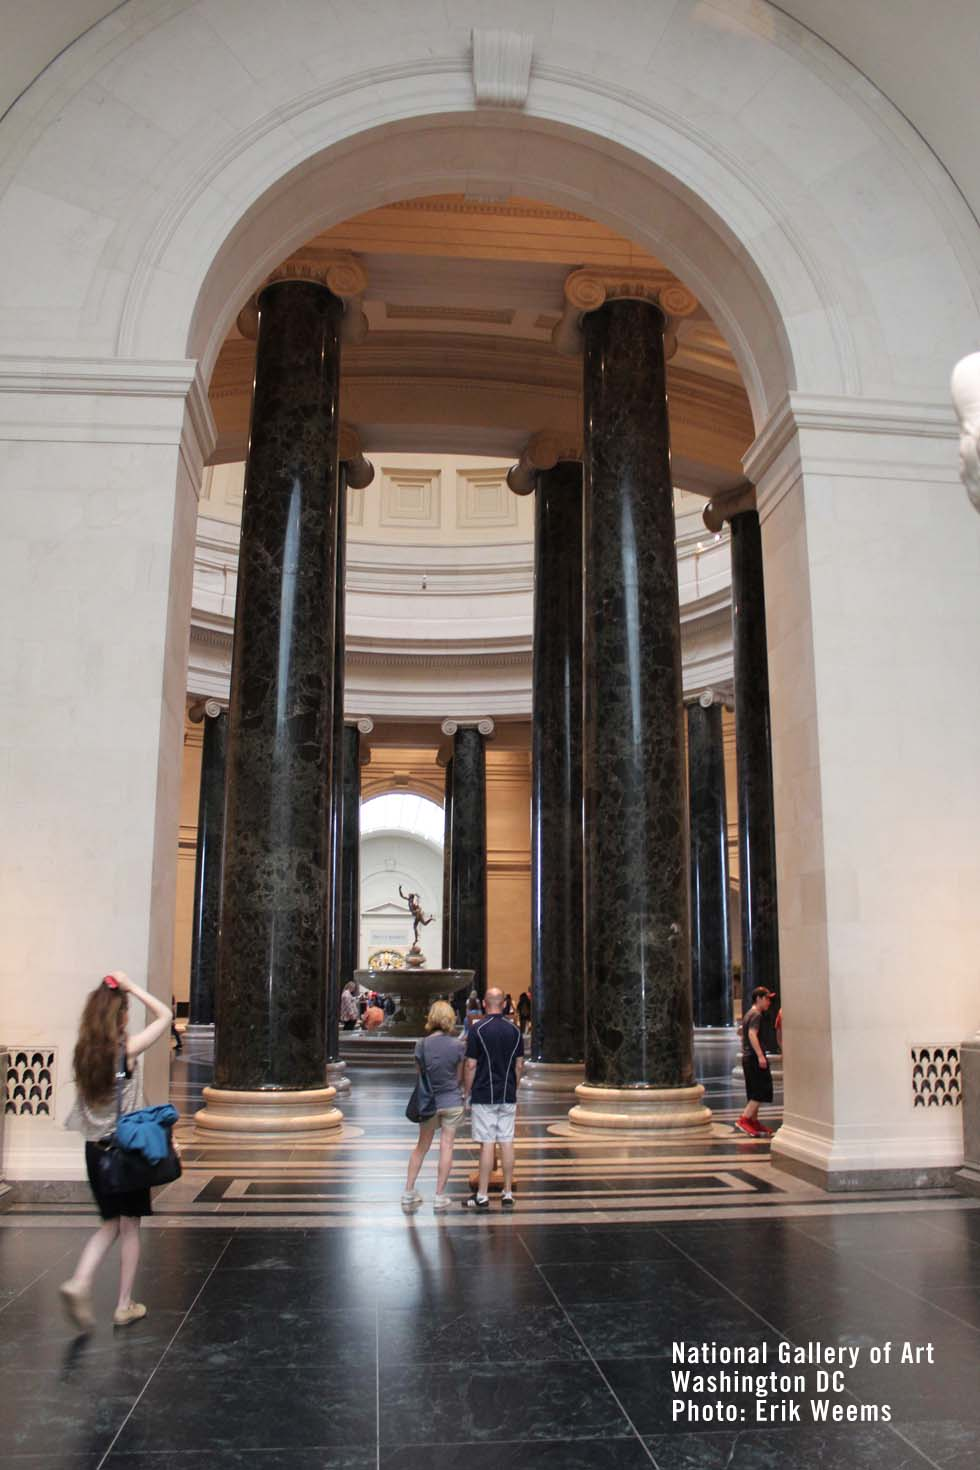 Enlarged - the Marble of the National Gallery